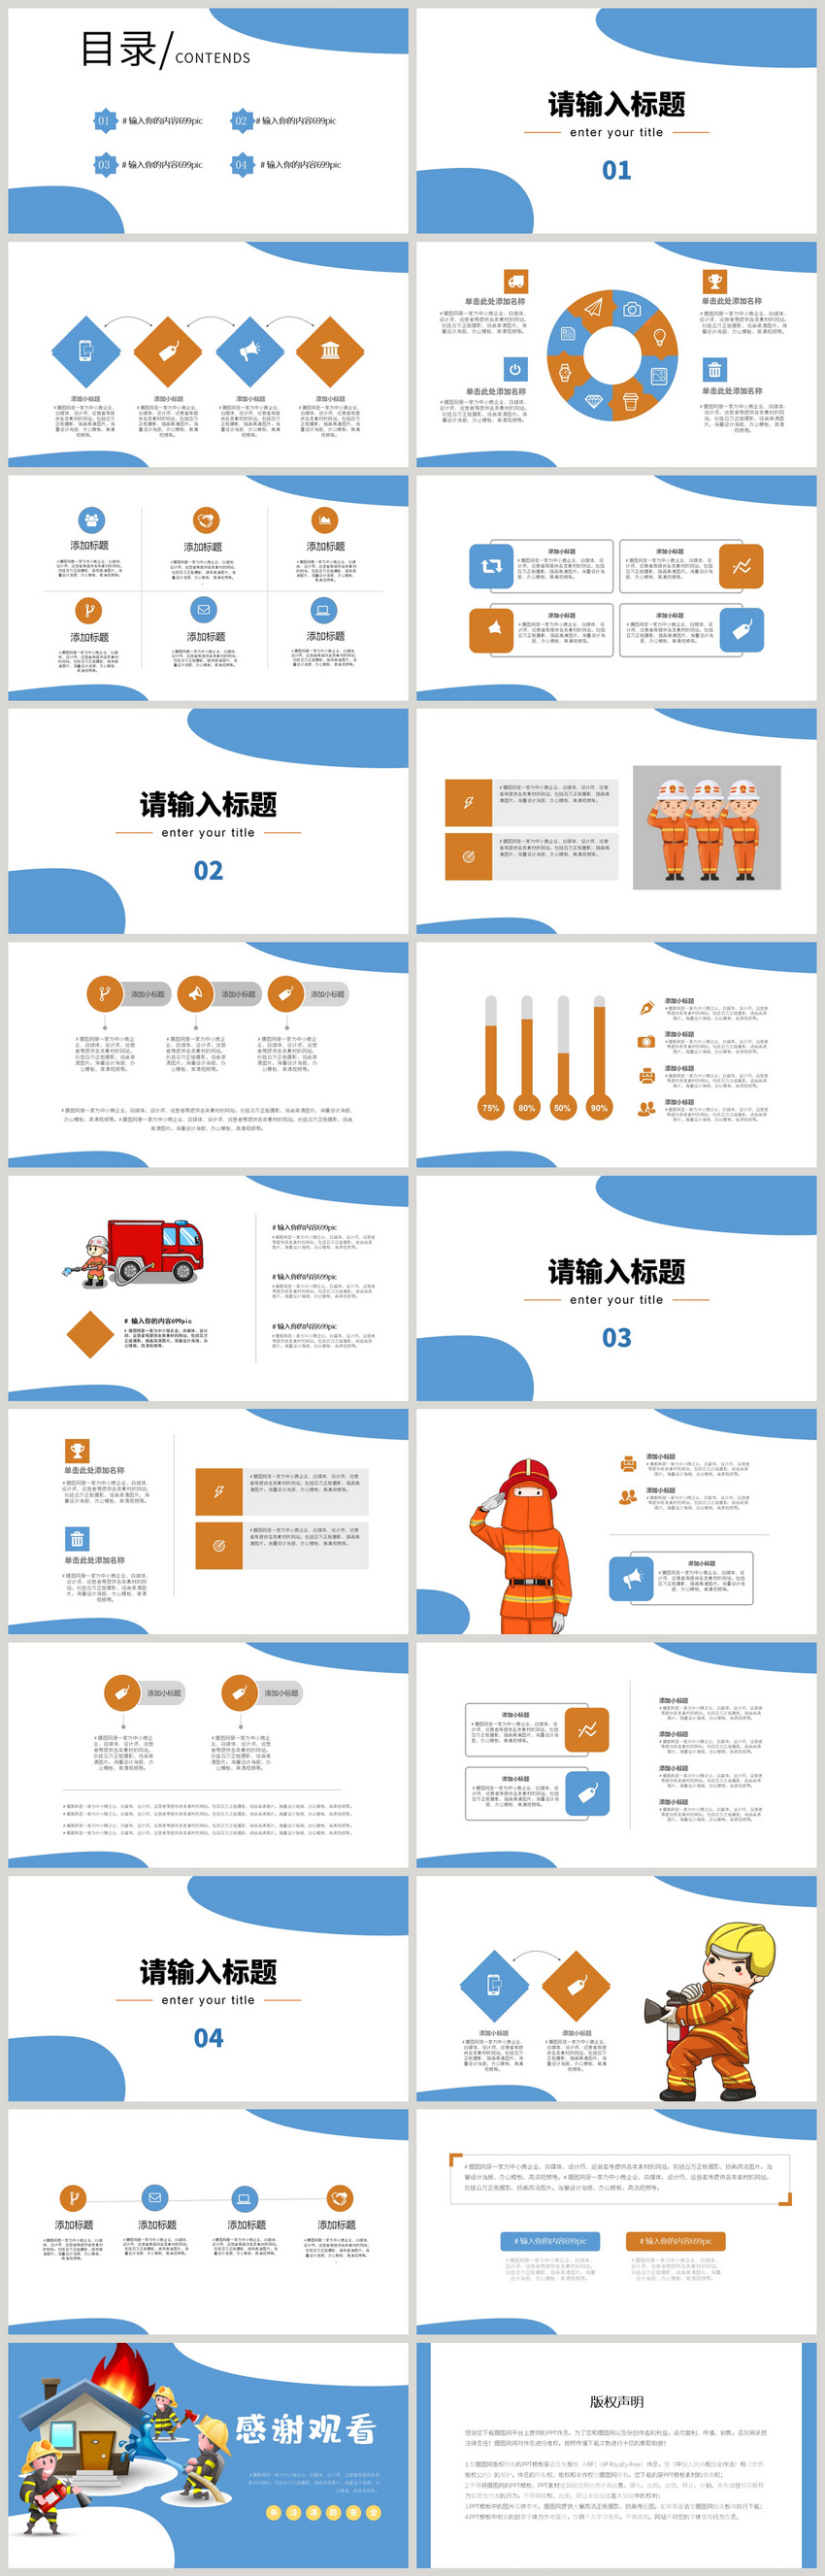 Fire Safety Ppt Template Powerpoint Templete Ppt Free Download 401129666 Lovepik Com